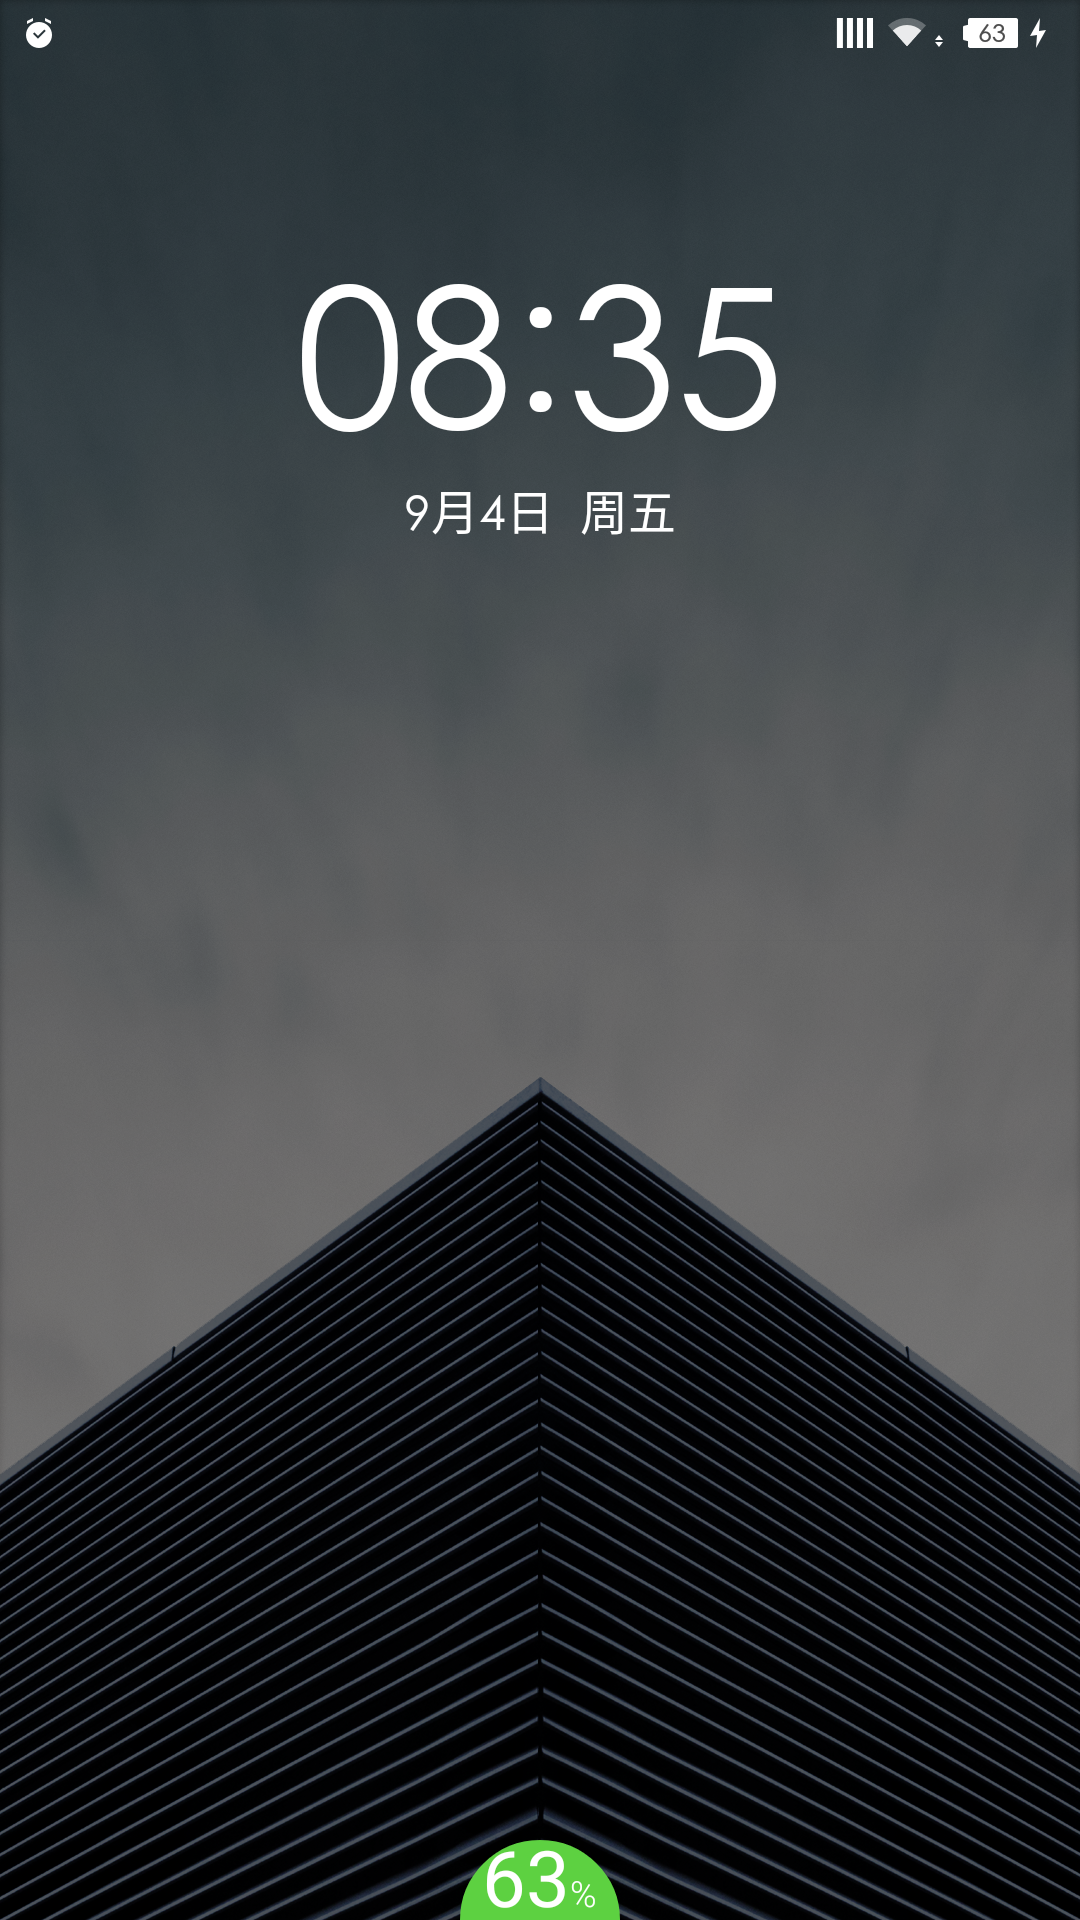 Screenshot_2015-09-04-08-35-36.png